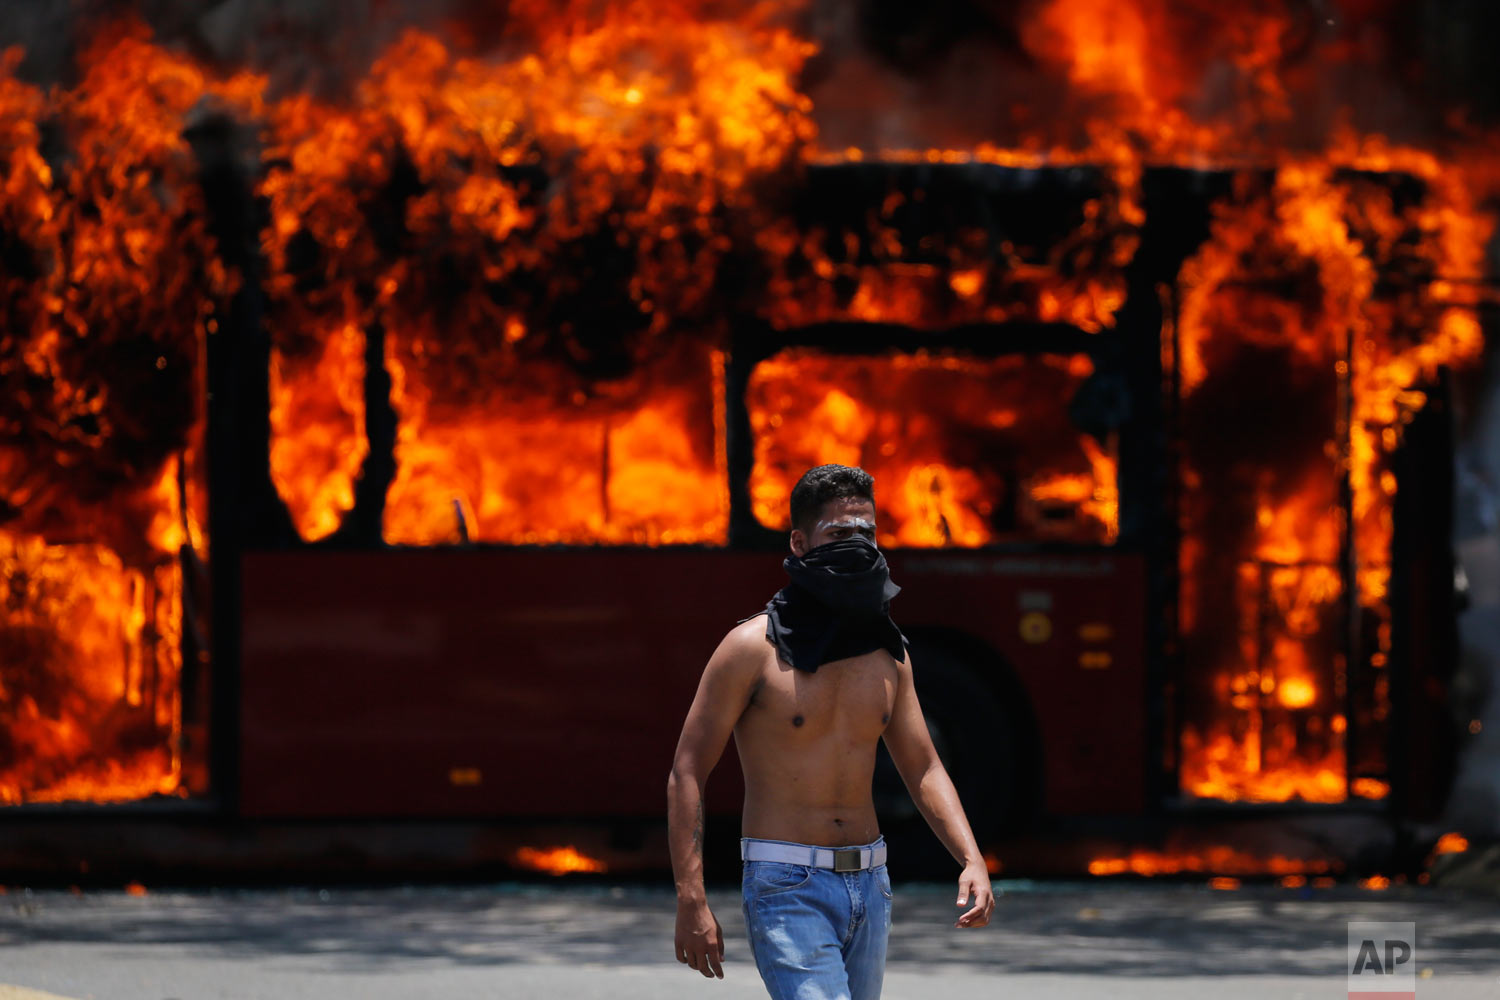 An anti-government protester walks near a bus that was set on fire by opponents of Venezuela's President Nicolas Maduro during clashes between rebel and loyalist soldiers during a failed military uprising in Caracas, Venezuela, April 30, 2019. (AP Photo/Fernando Llano)